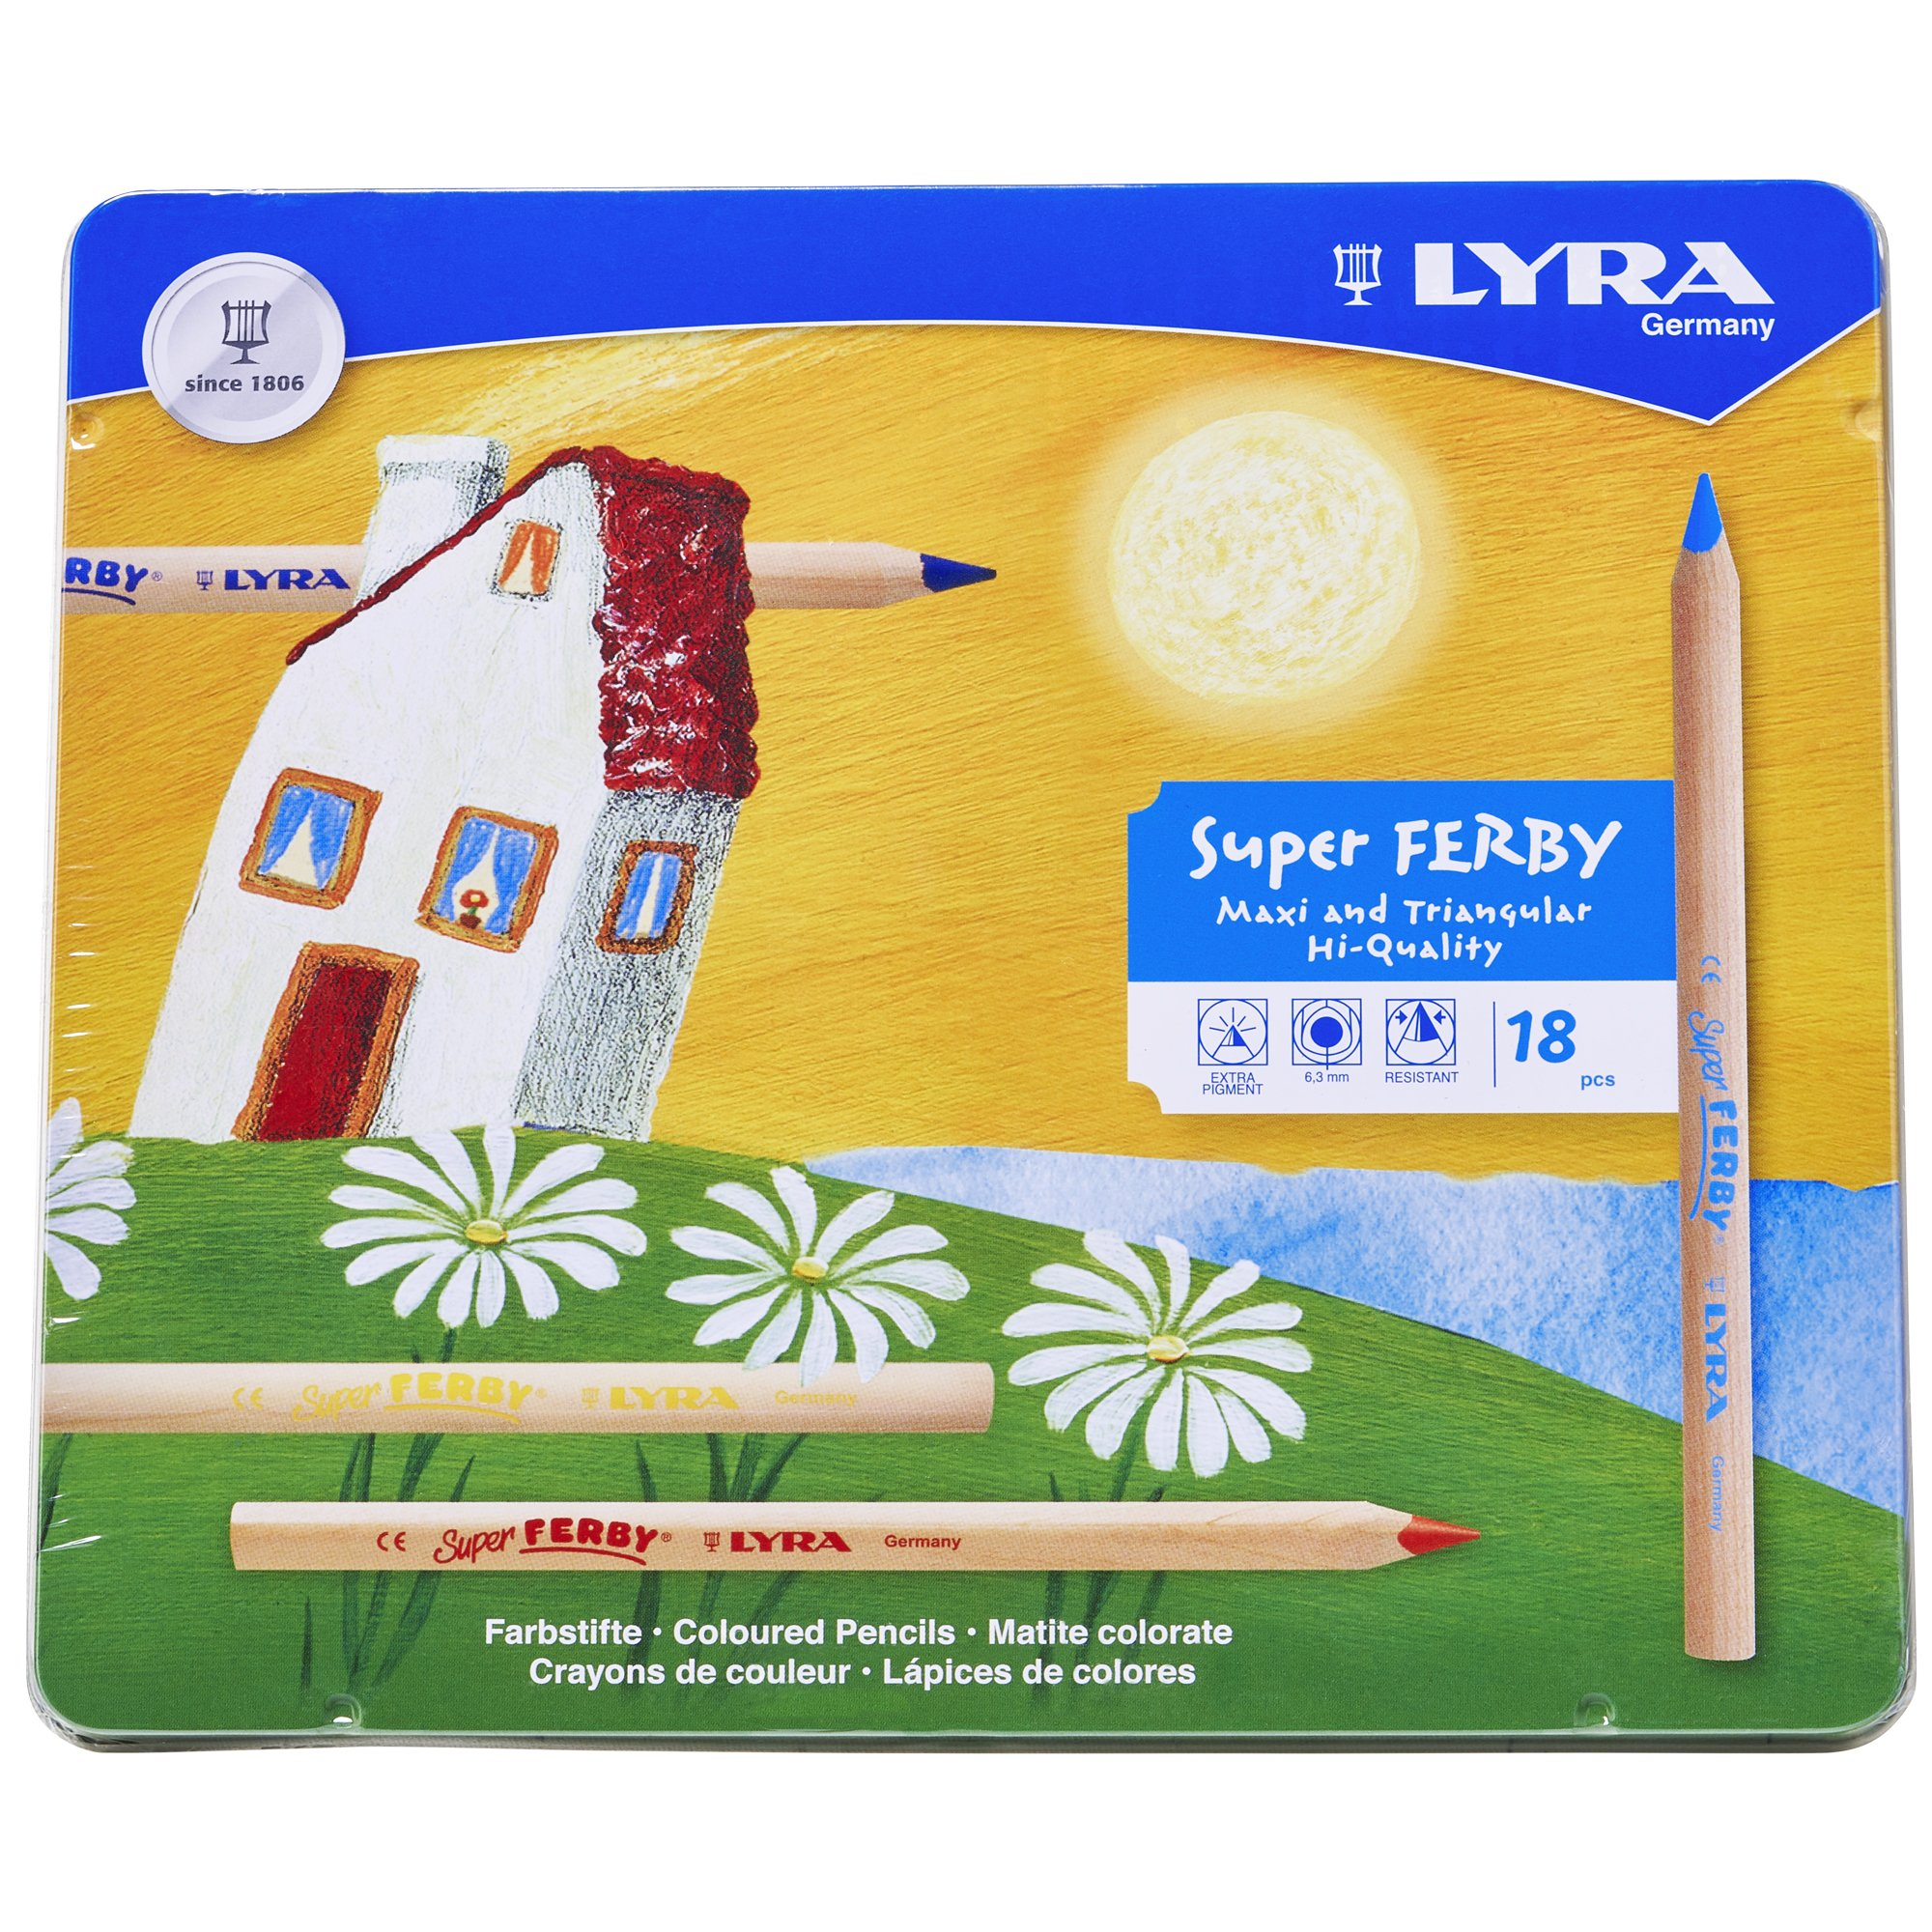 LYRA Super Ferby Giant Triangular Colored Pencil, Unlacquered, 6.25 Millimeter Cores, Assorted Colors, 18-Pack (3711180) by Lyra